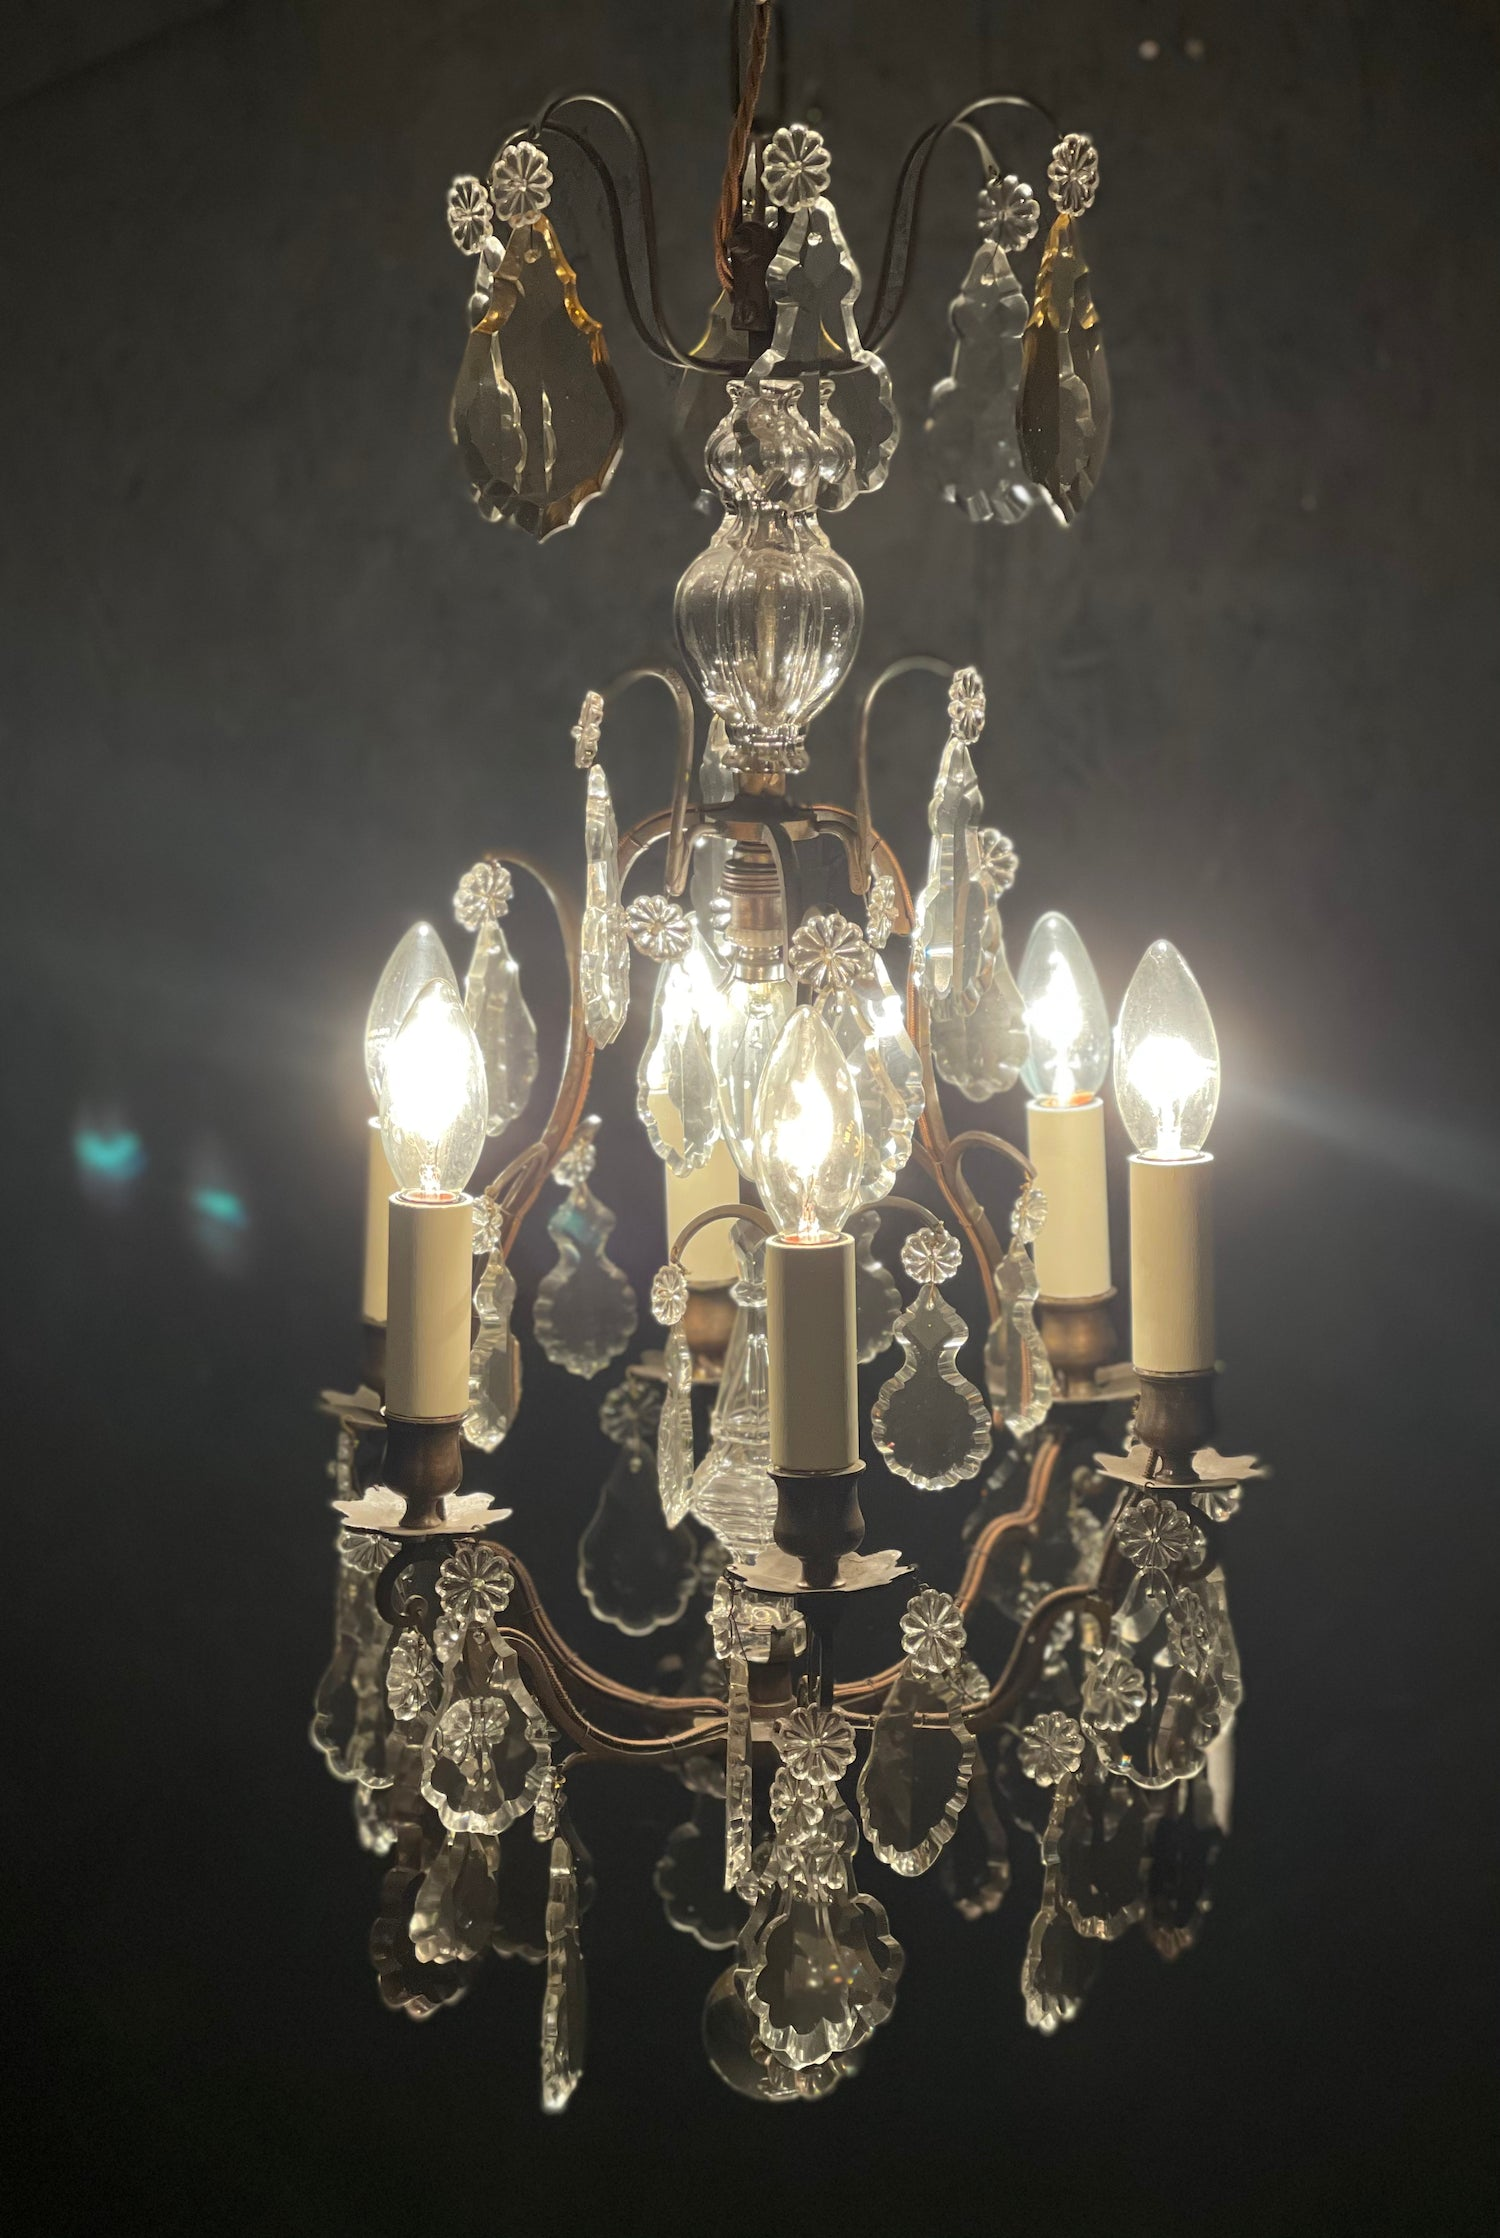 Antique French Chandelier - Madeleine